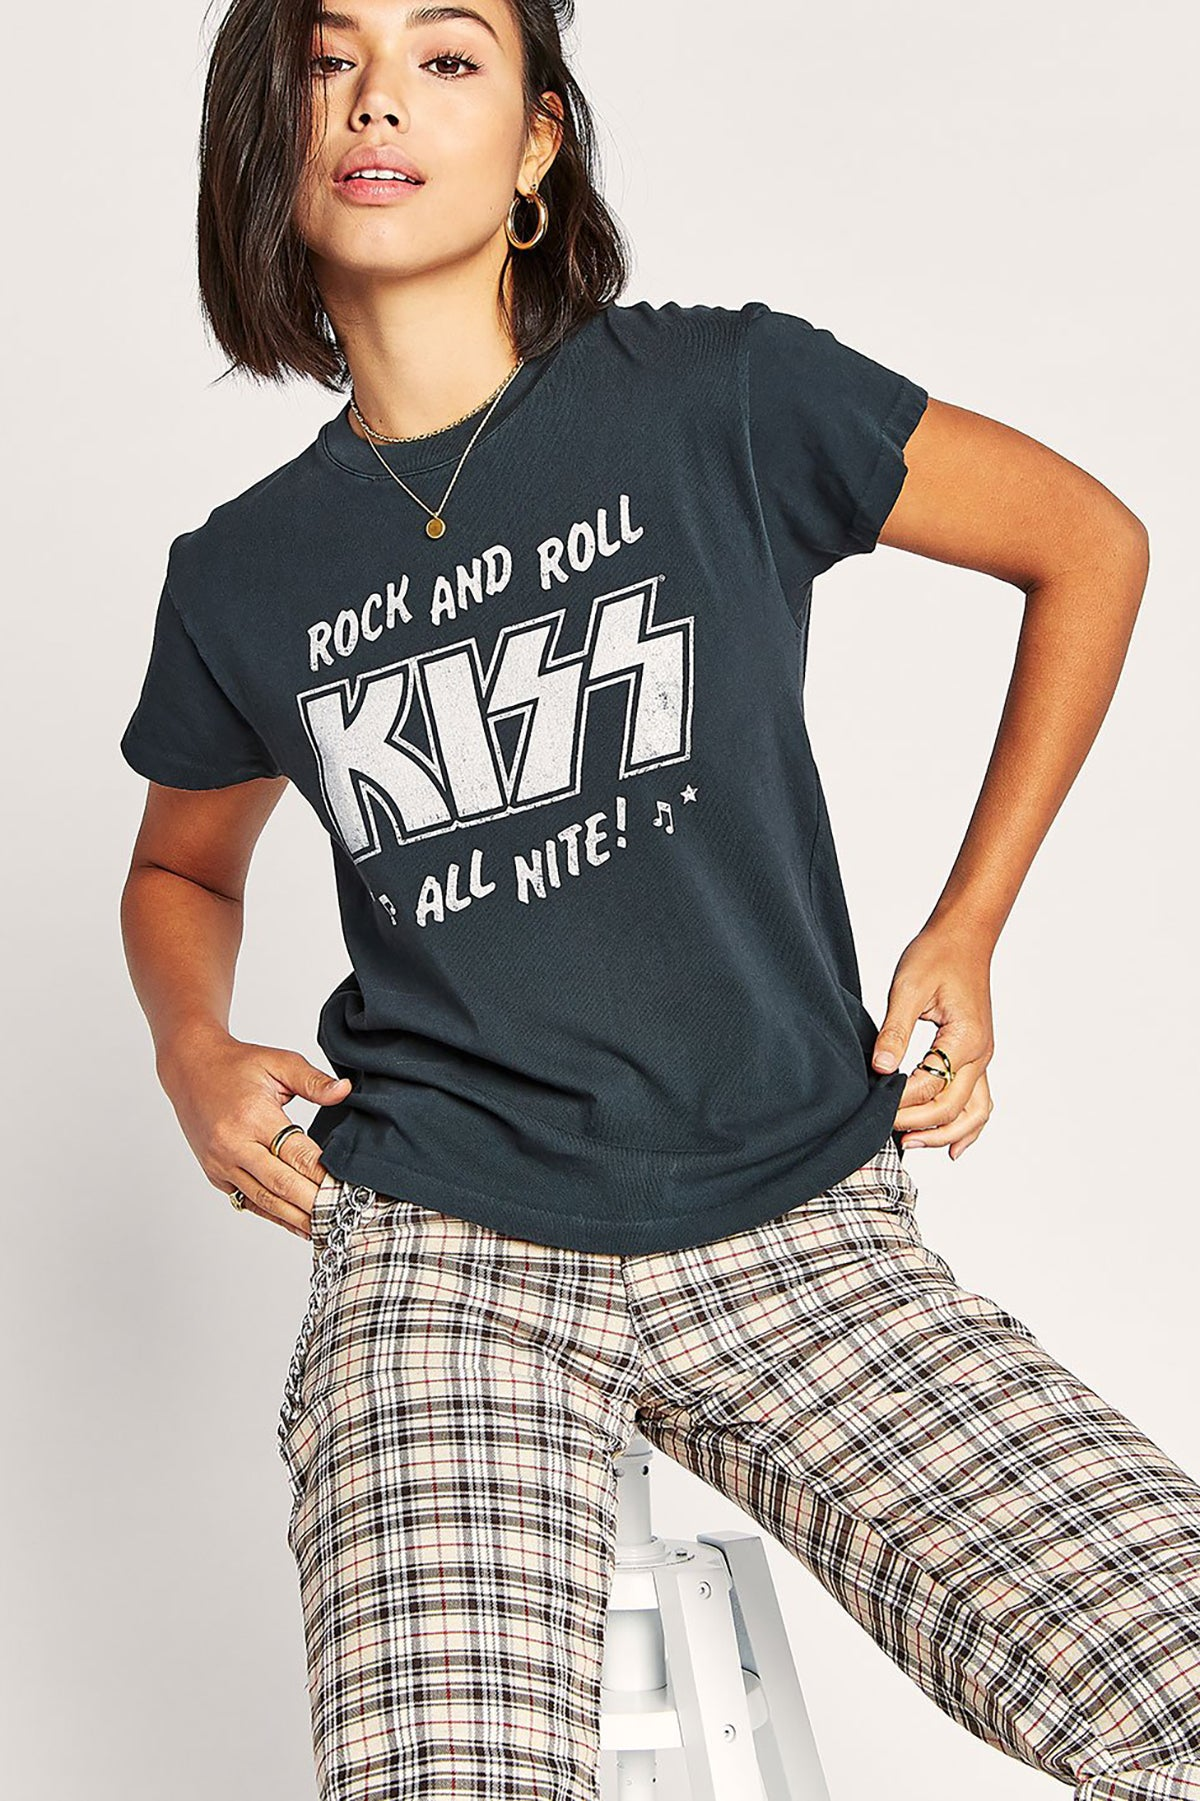 Kiss All Nite Tour Tee